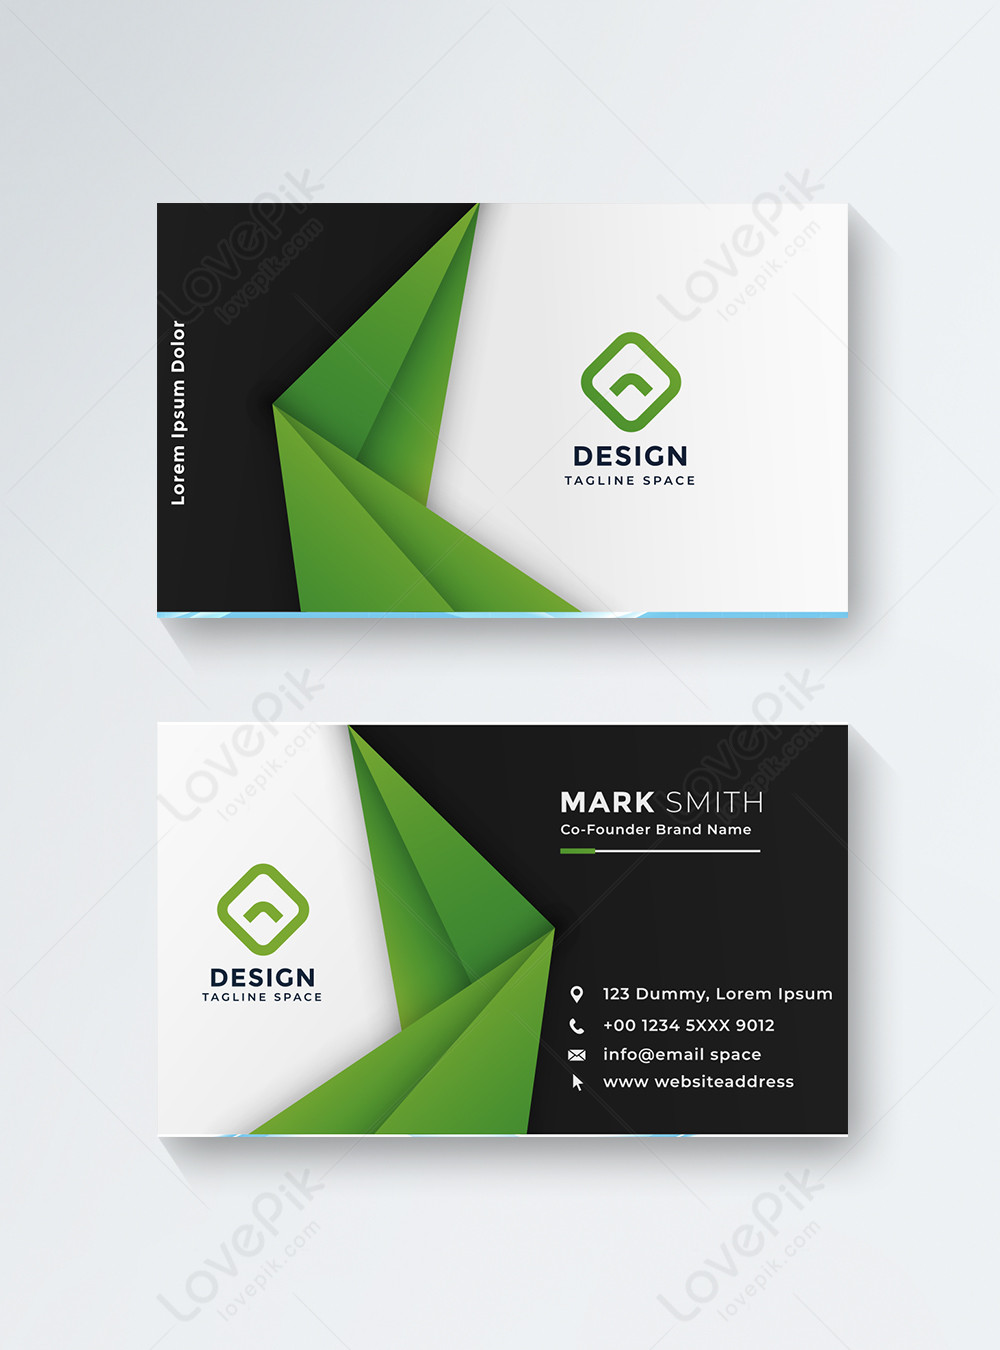 Black and green business card template image_picture free download  450007582_lovepik.com